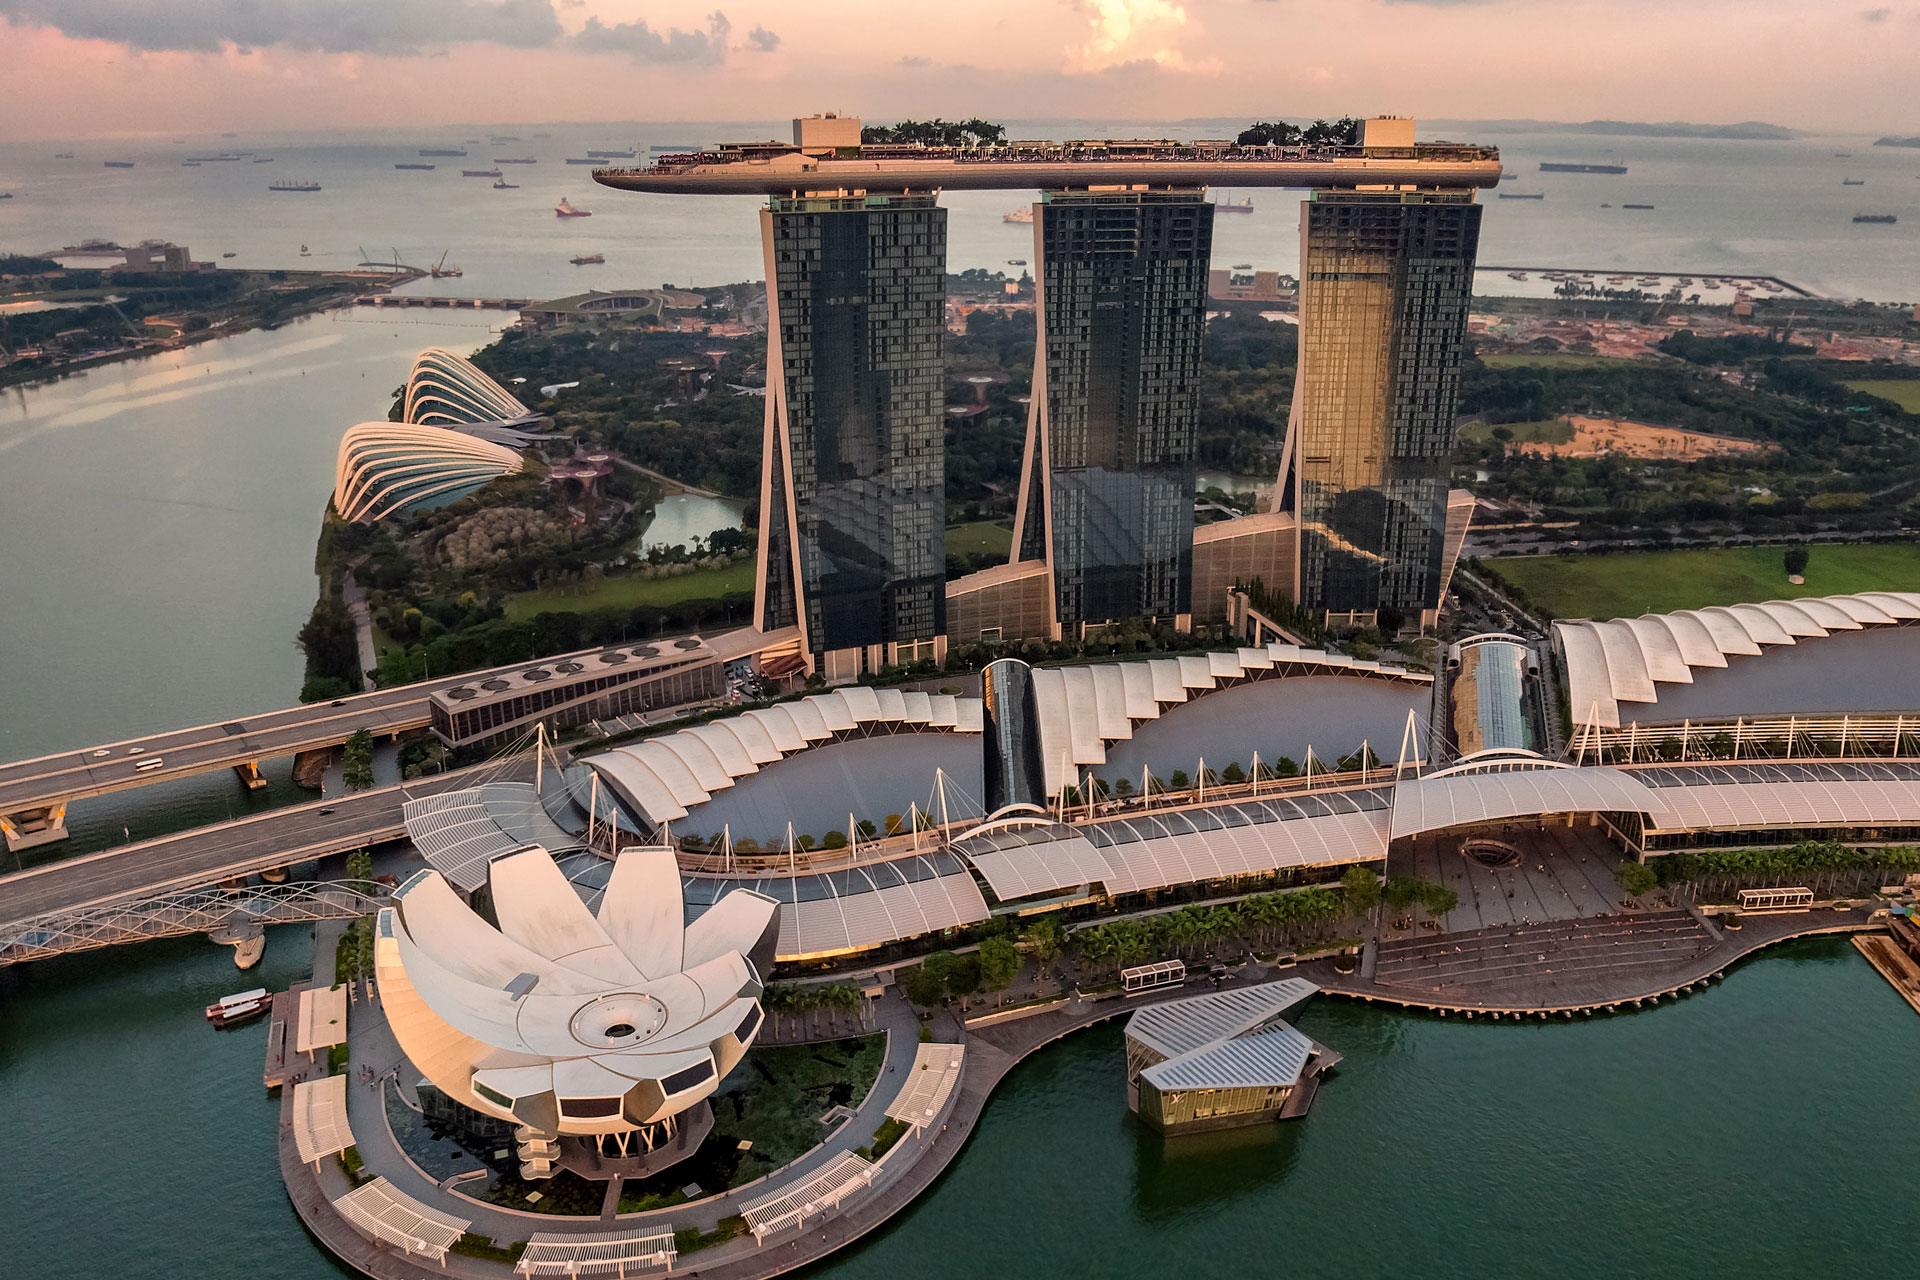 A sample of business process outsourcing project Marina Bay Sands in Singapore